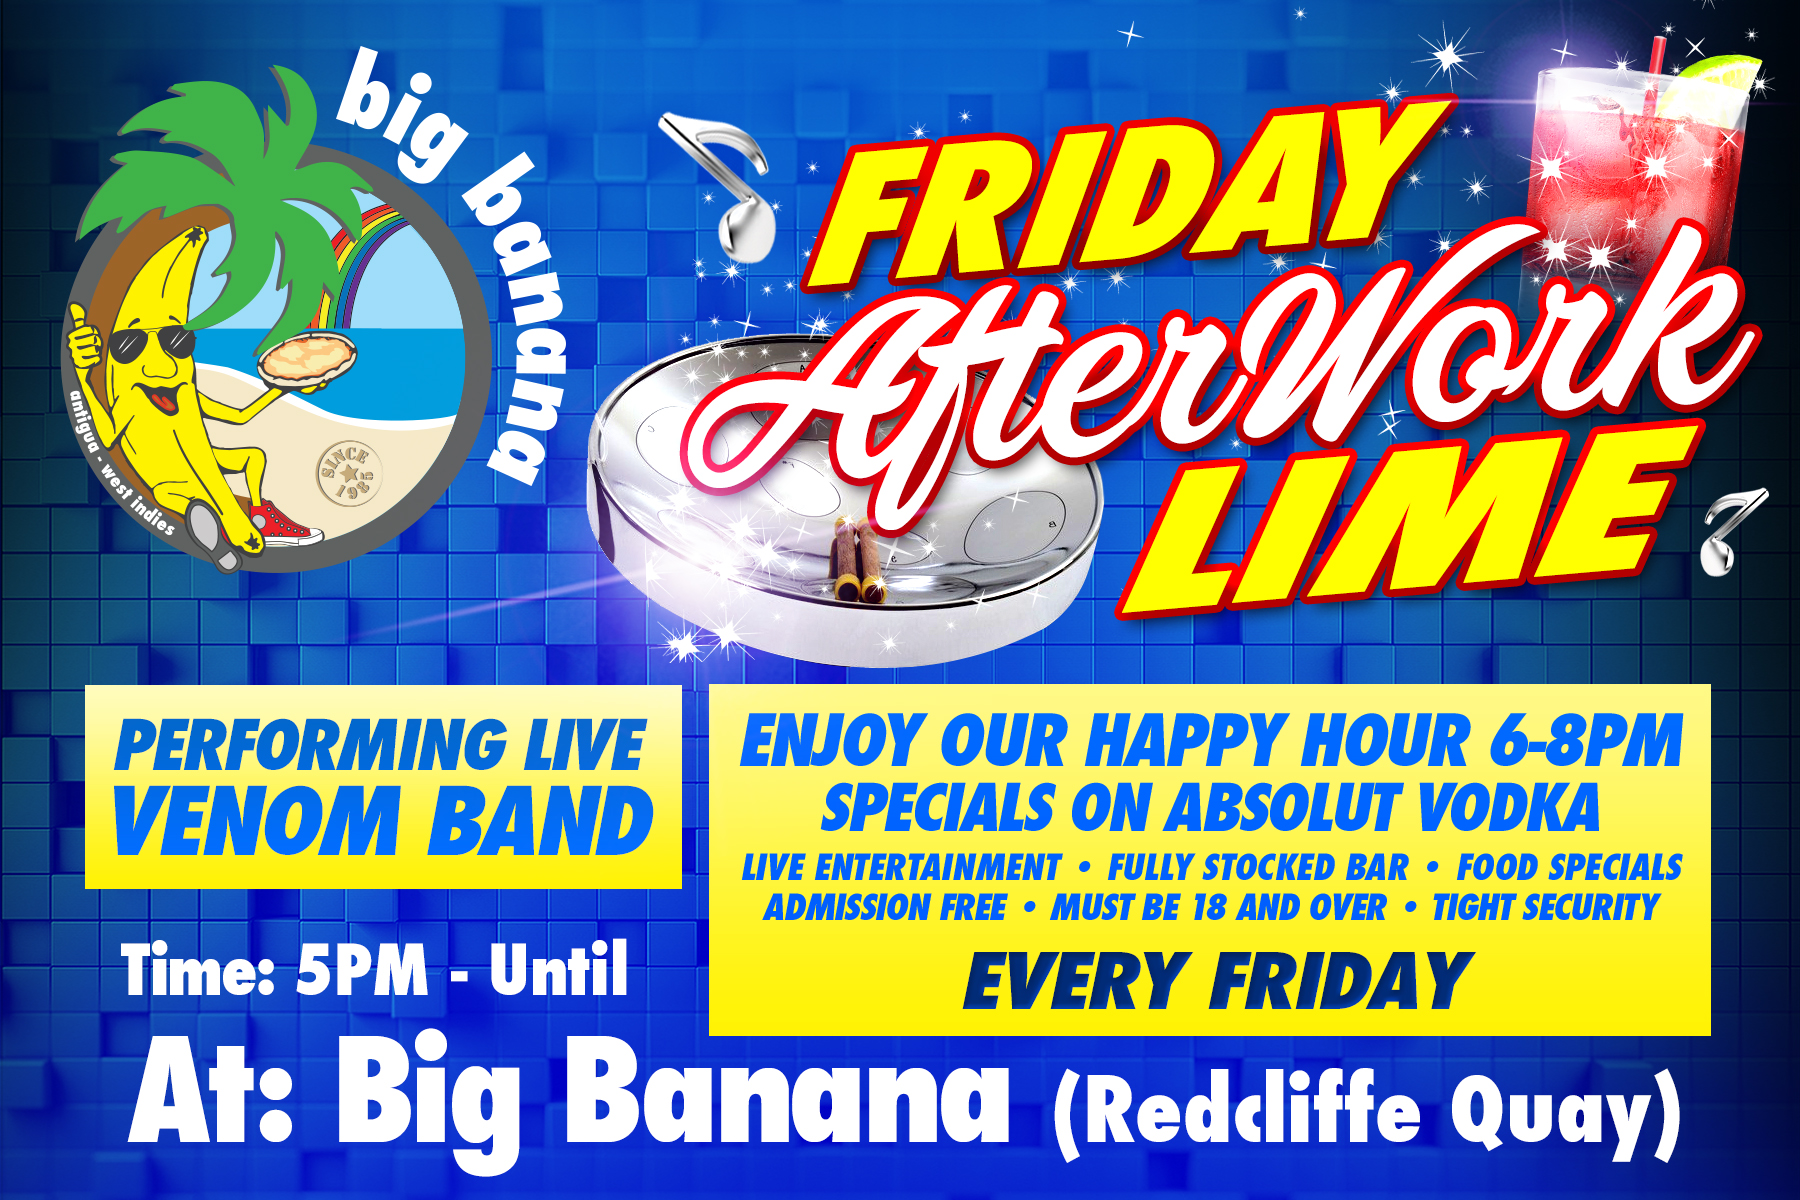 Afterwork Lime – Every Friday @ Pizzas in Paradise